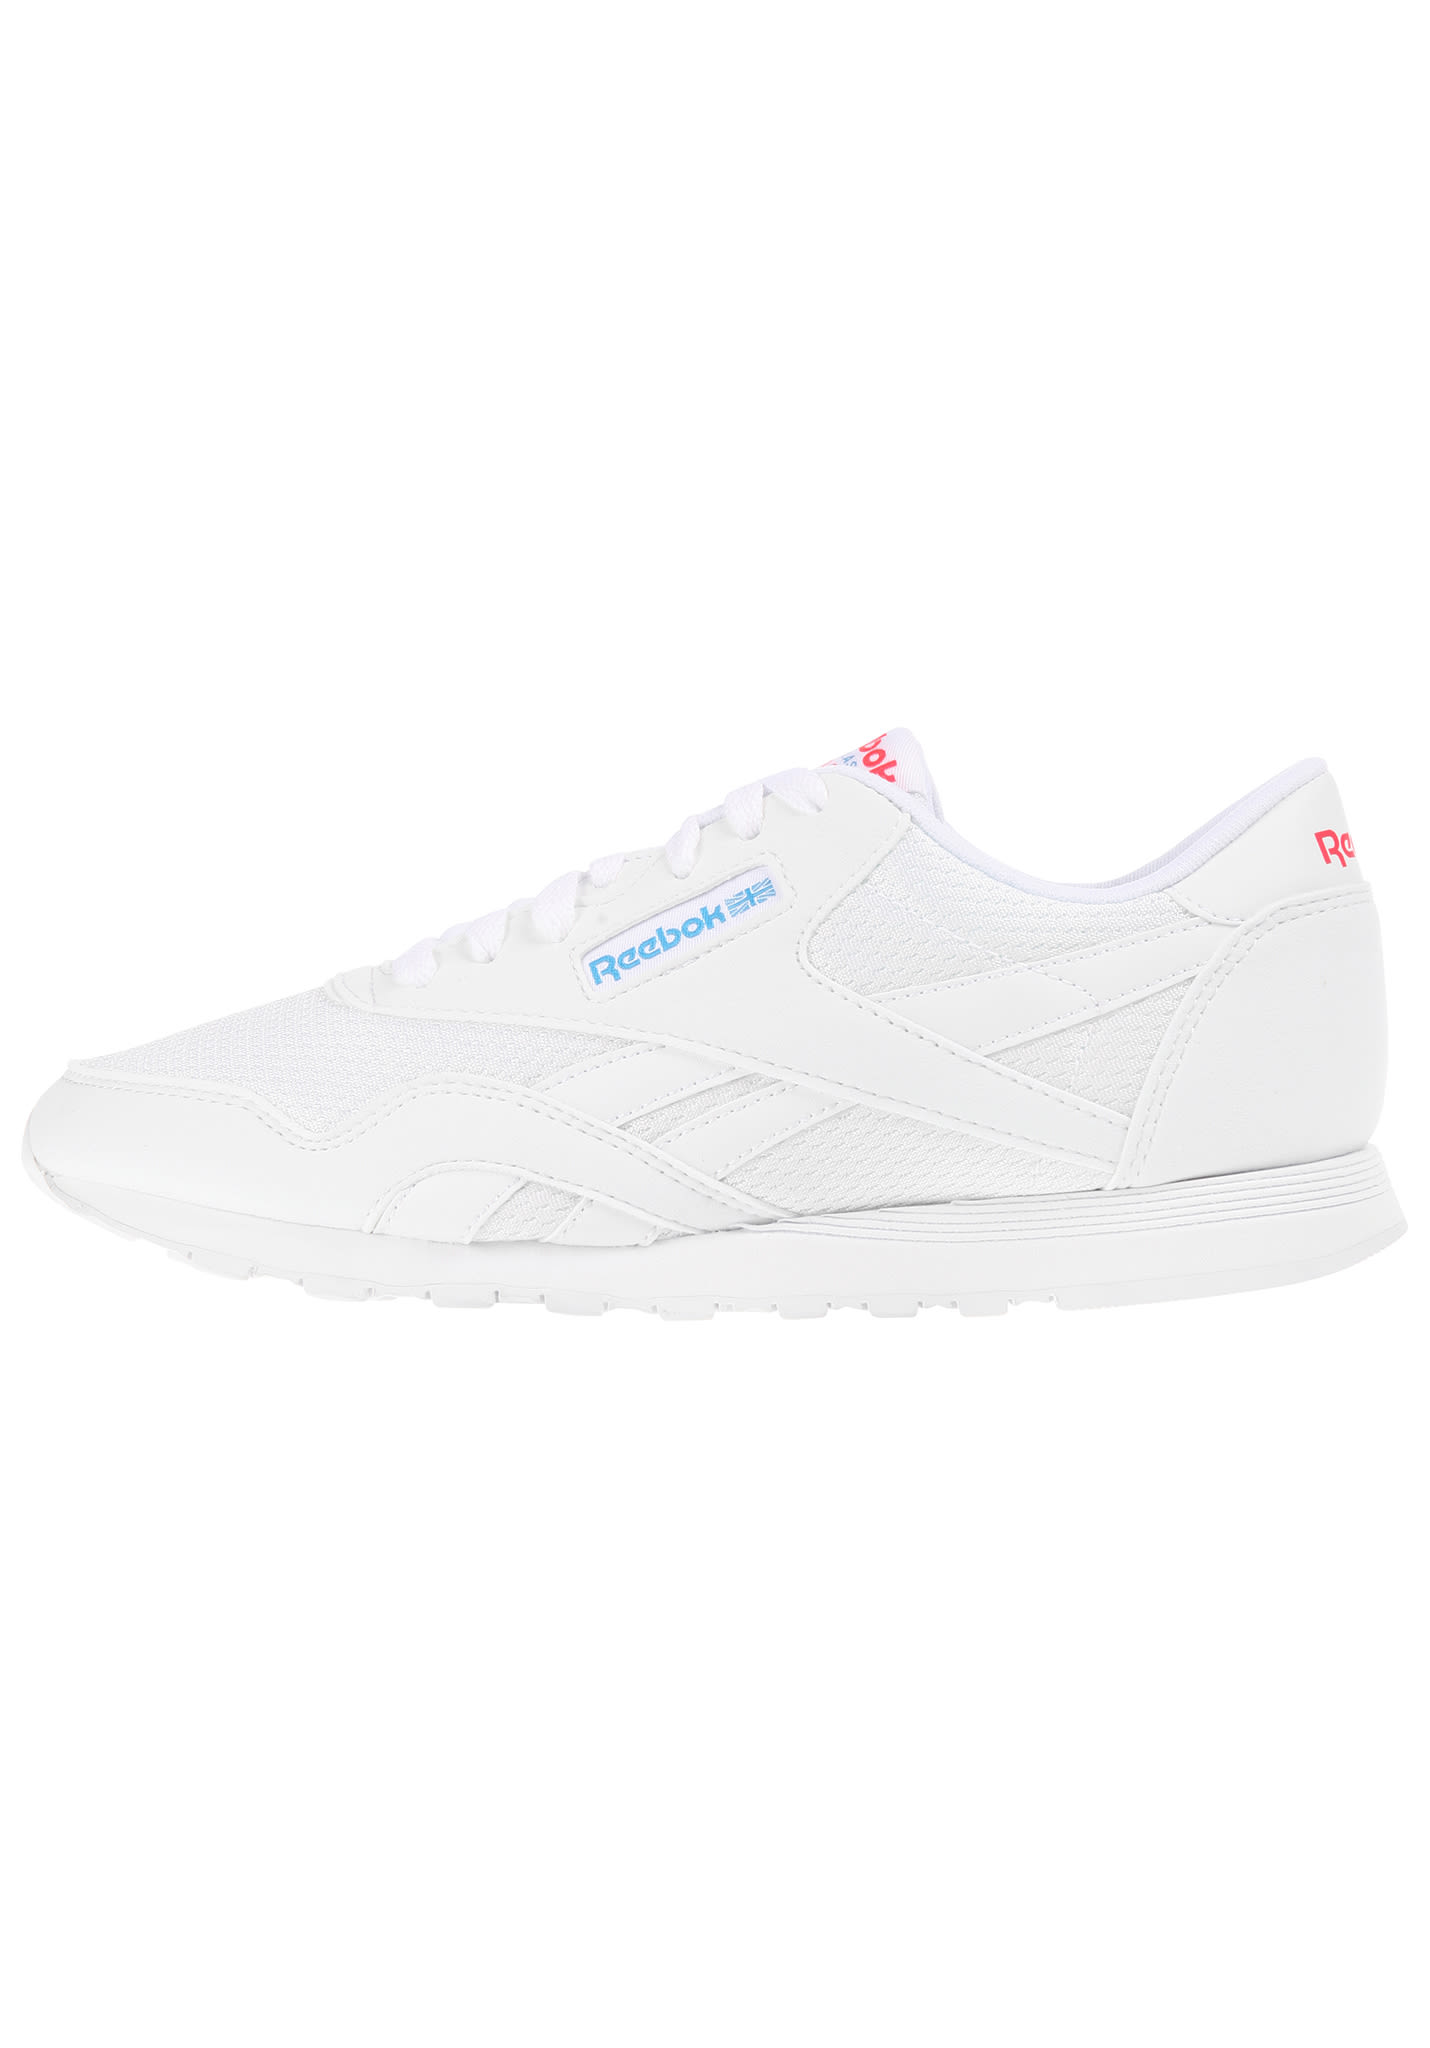 d4bc7ae1f62d Reebok Classic Nylon Text - Sneakers for Women - White - Planet Sports